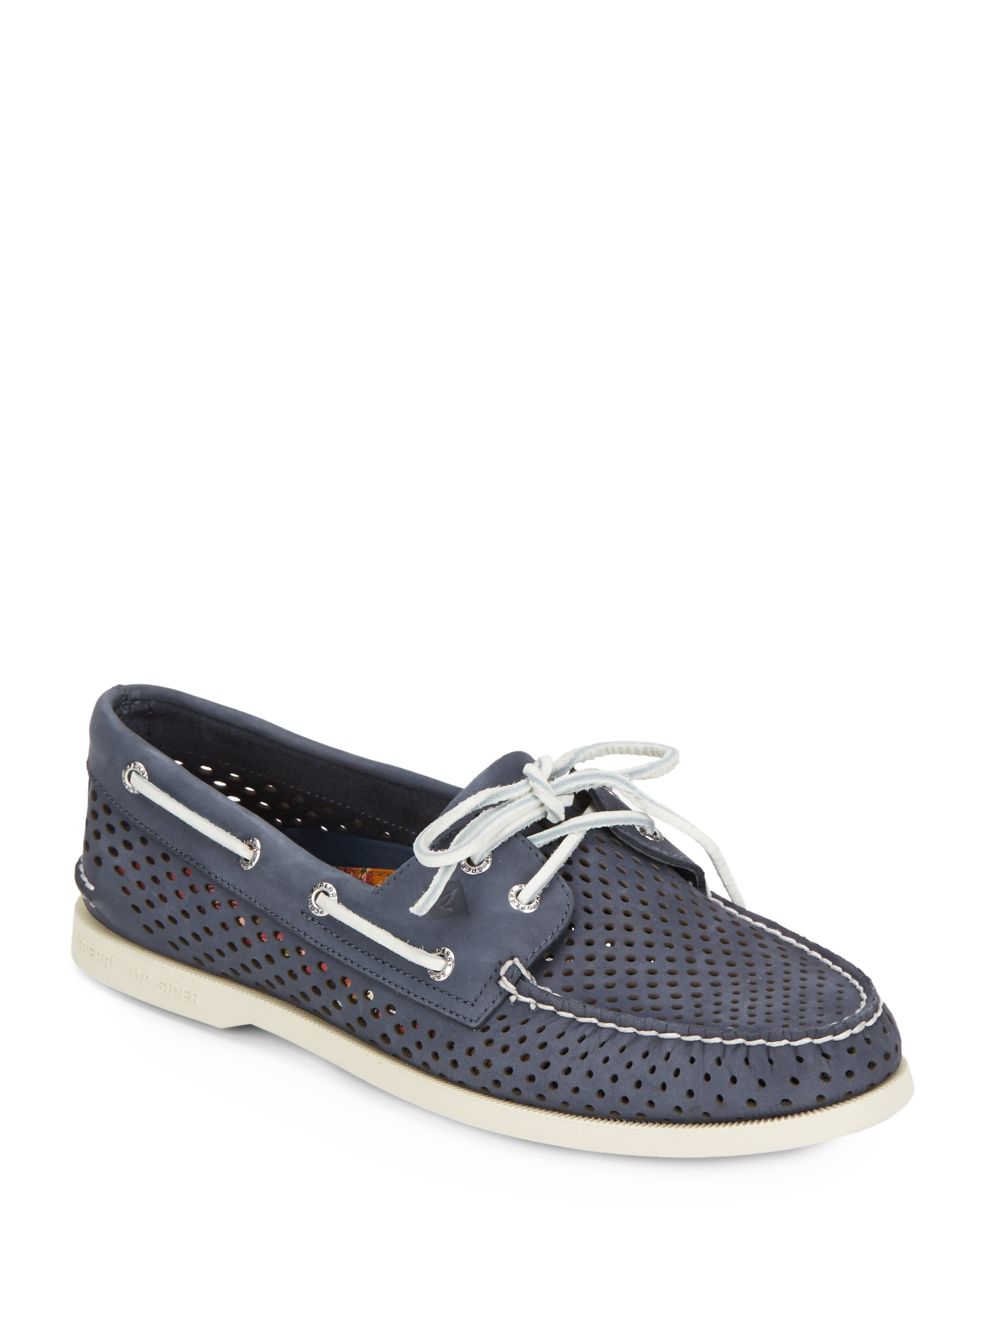 Where Are Sperry Top Sider Shoes Made